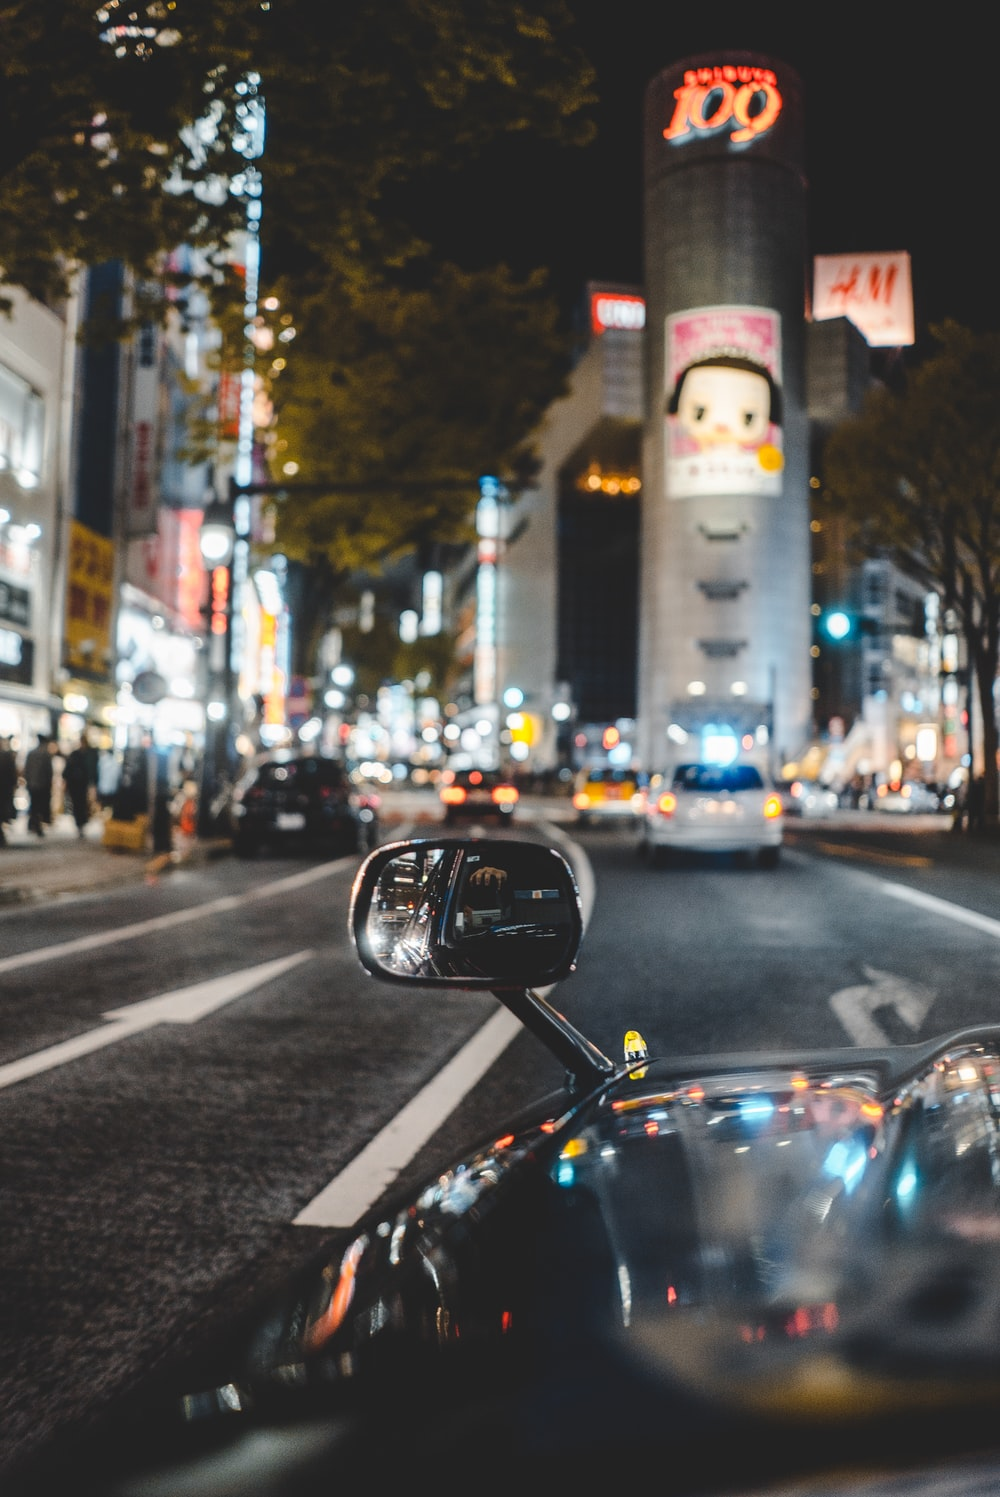 view of a road in Shibuya, Japan